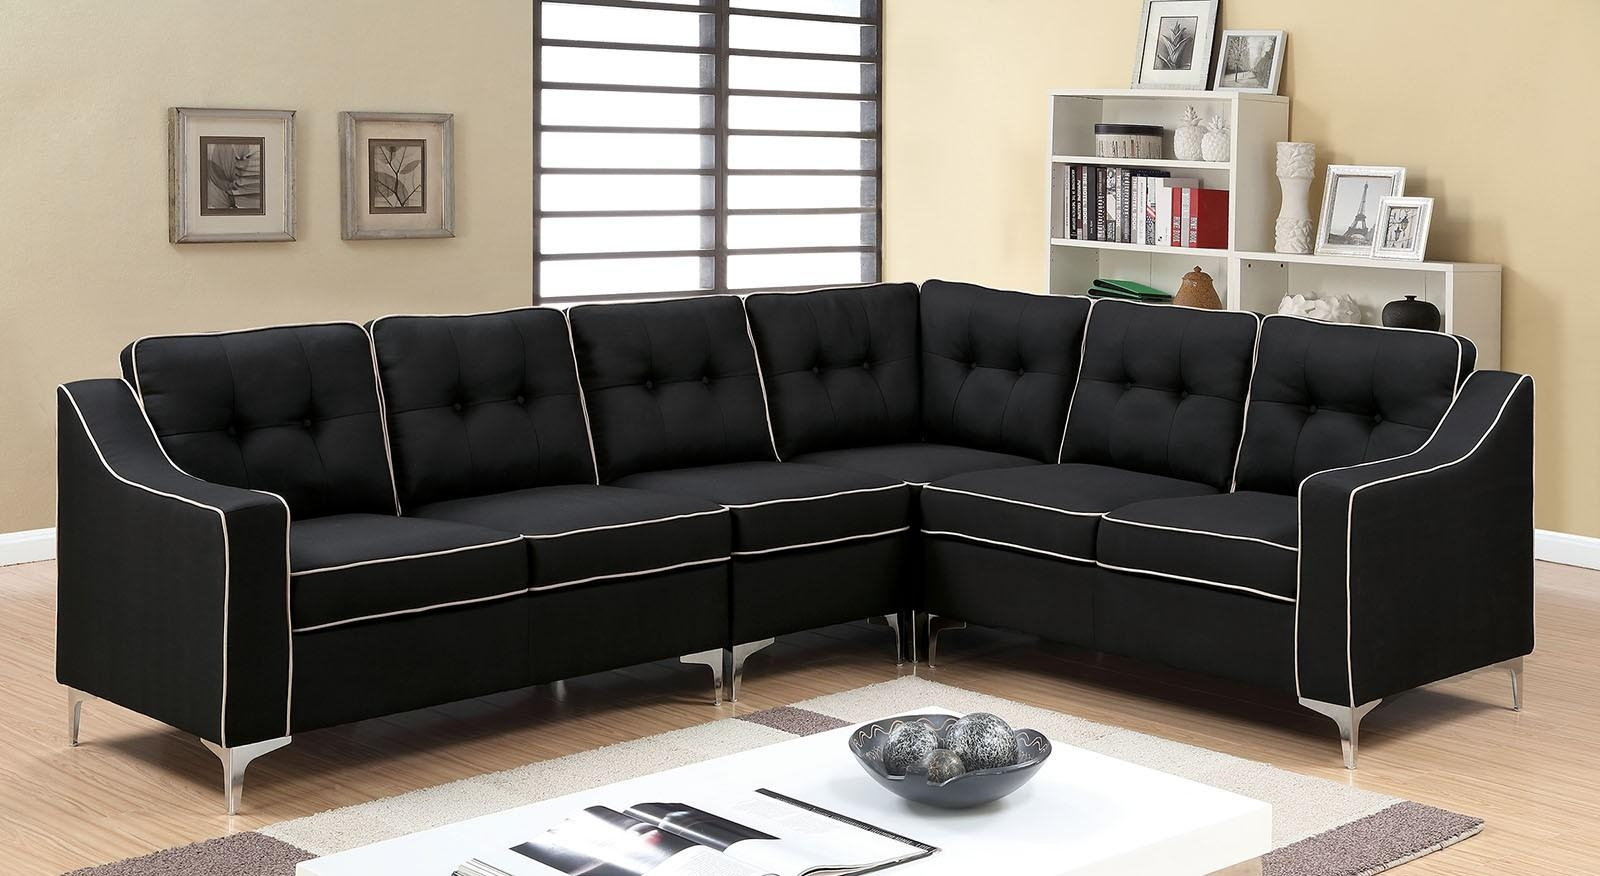 Glenda Ii Black Fabric Sectional W/ Moveable Single Chair For Black Fabric Sectional (Image 12 of 15)